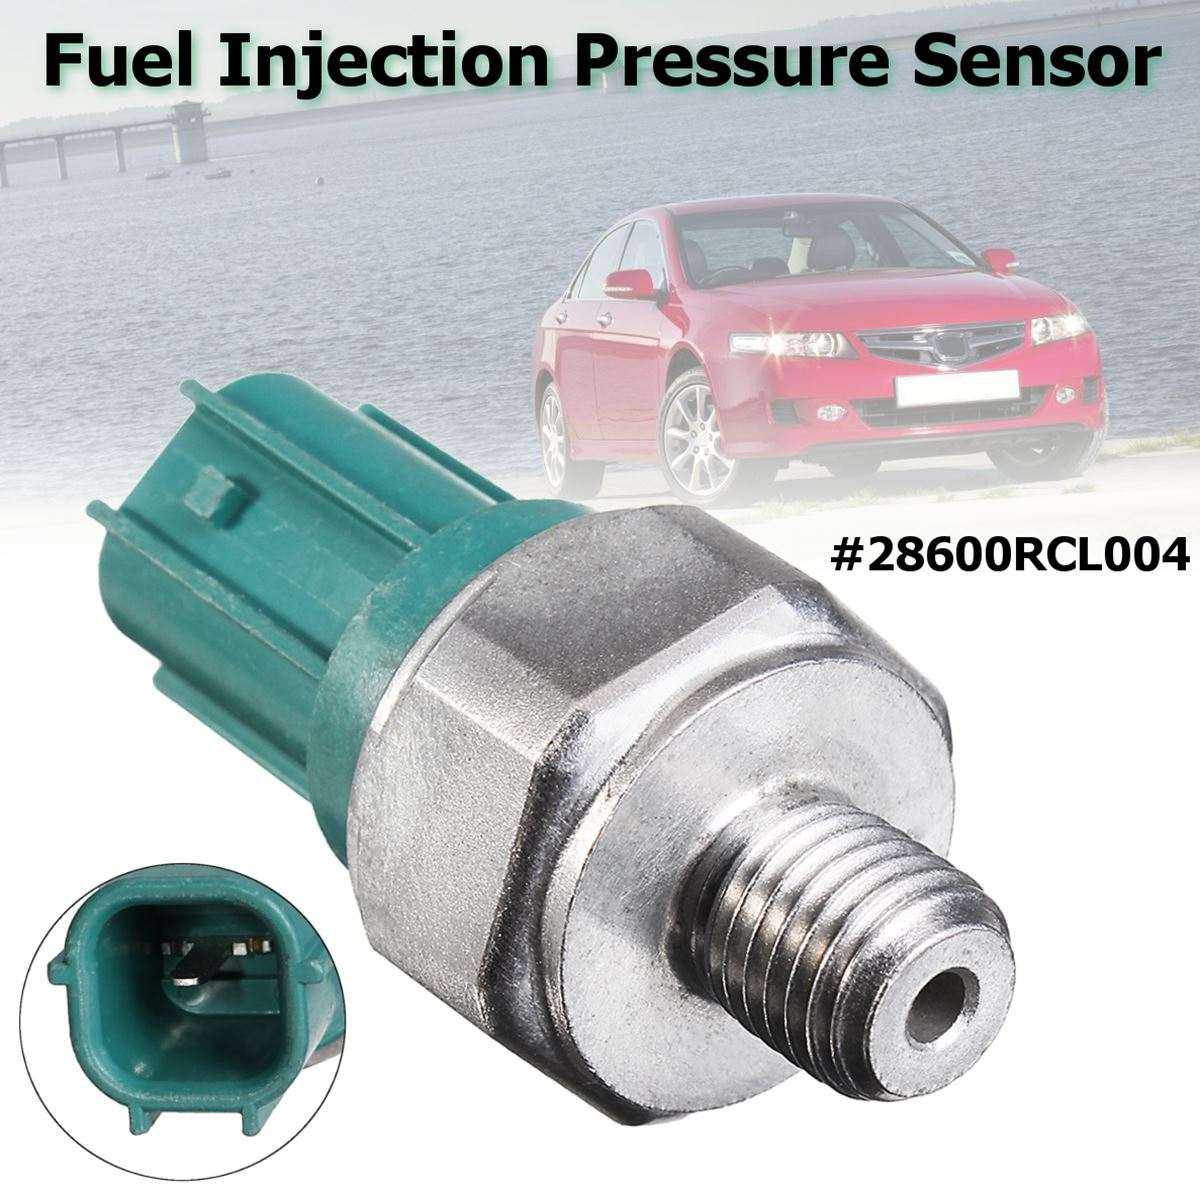 #28600RCL004 #PS626 Fuel Injection Pressure Transmission Sensor For Honda/Accord/Acura/CR-V Element RSX TSX 2003 2004 2005 2006